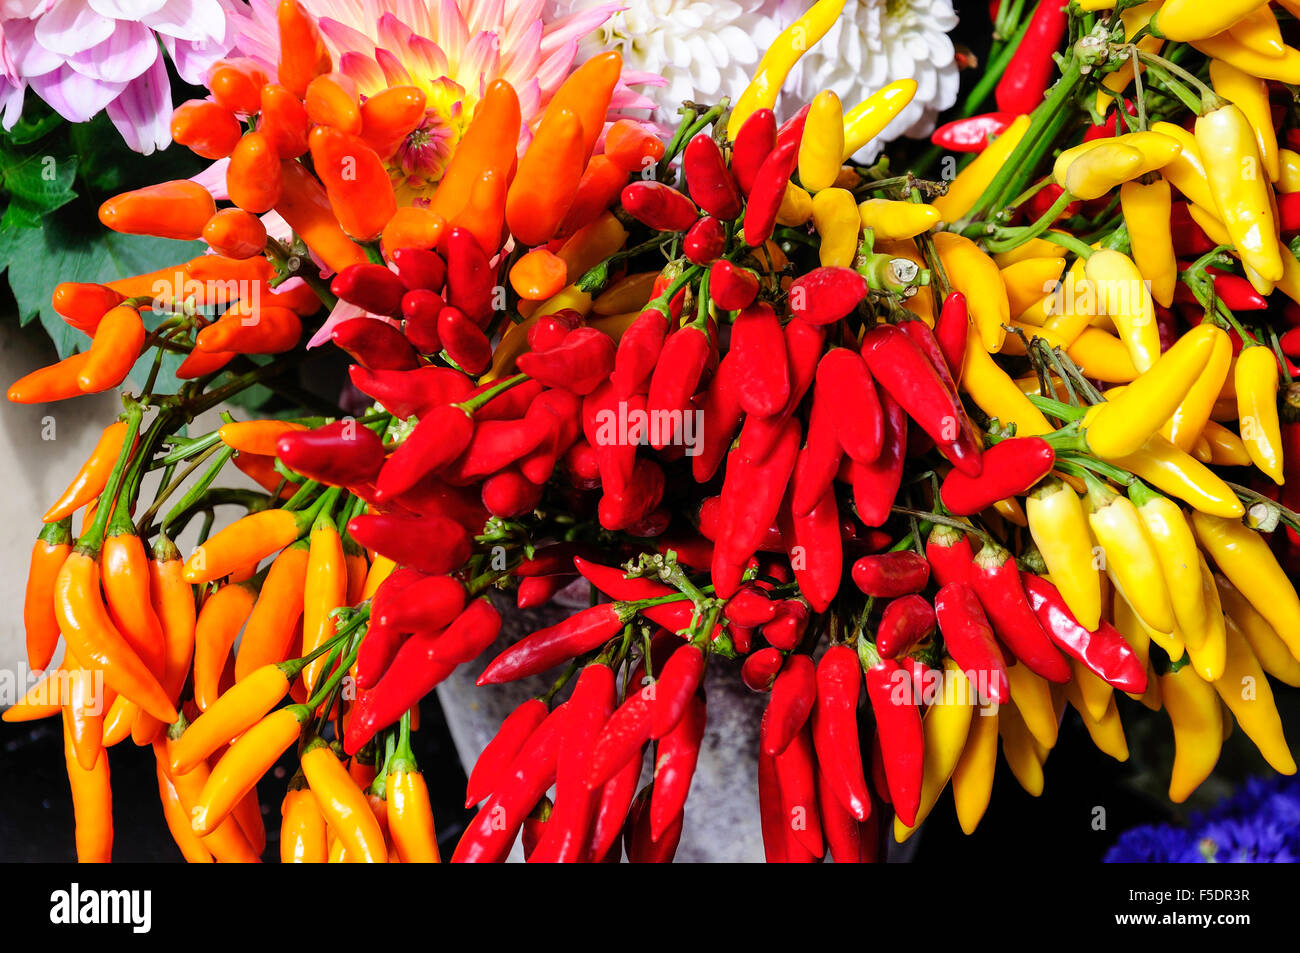 Colourful peppers in flower shop, Flask Flask Walk, Hampstead, London Borough of Camden, Greater London, England, - Stock Image